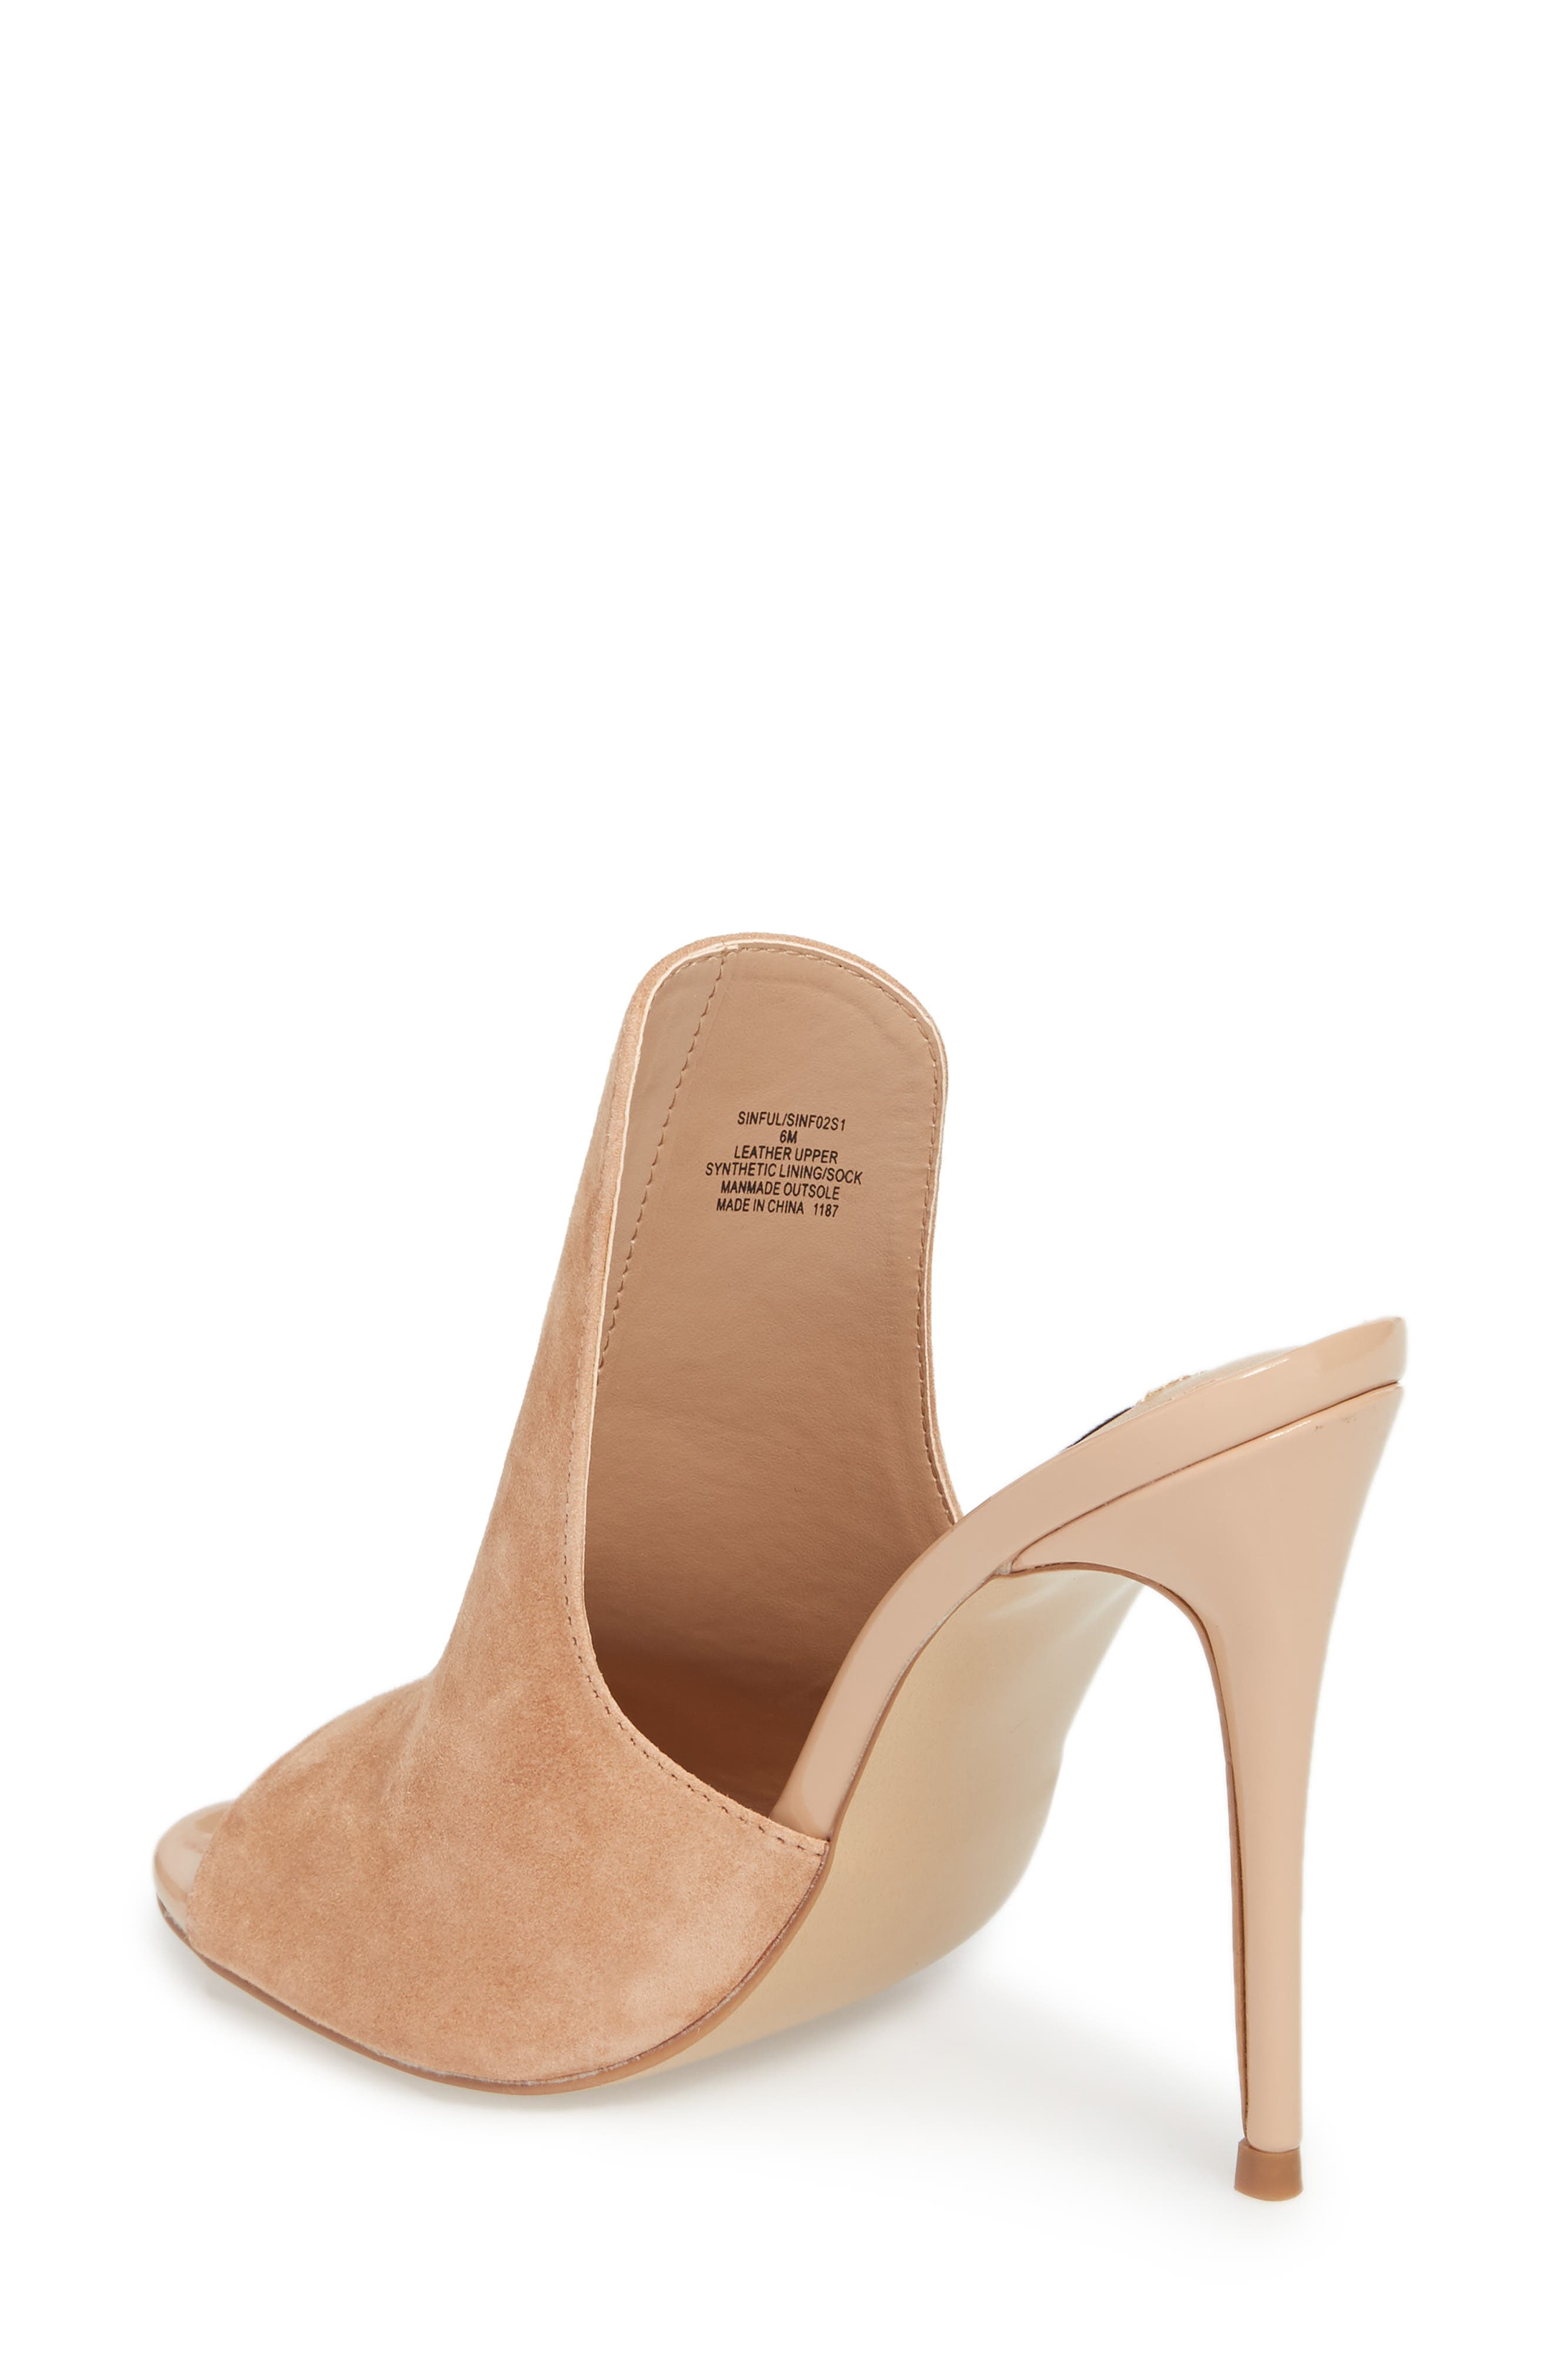 Sinful Sandal,                             Alternate thumbnail 2, color,                             Nude Suede